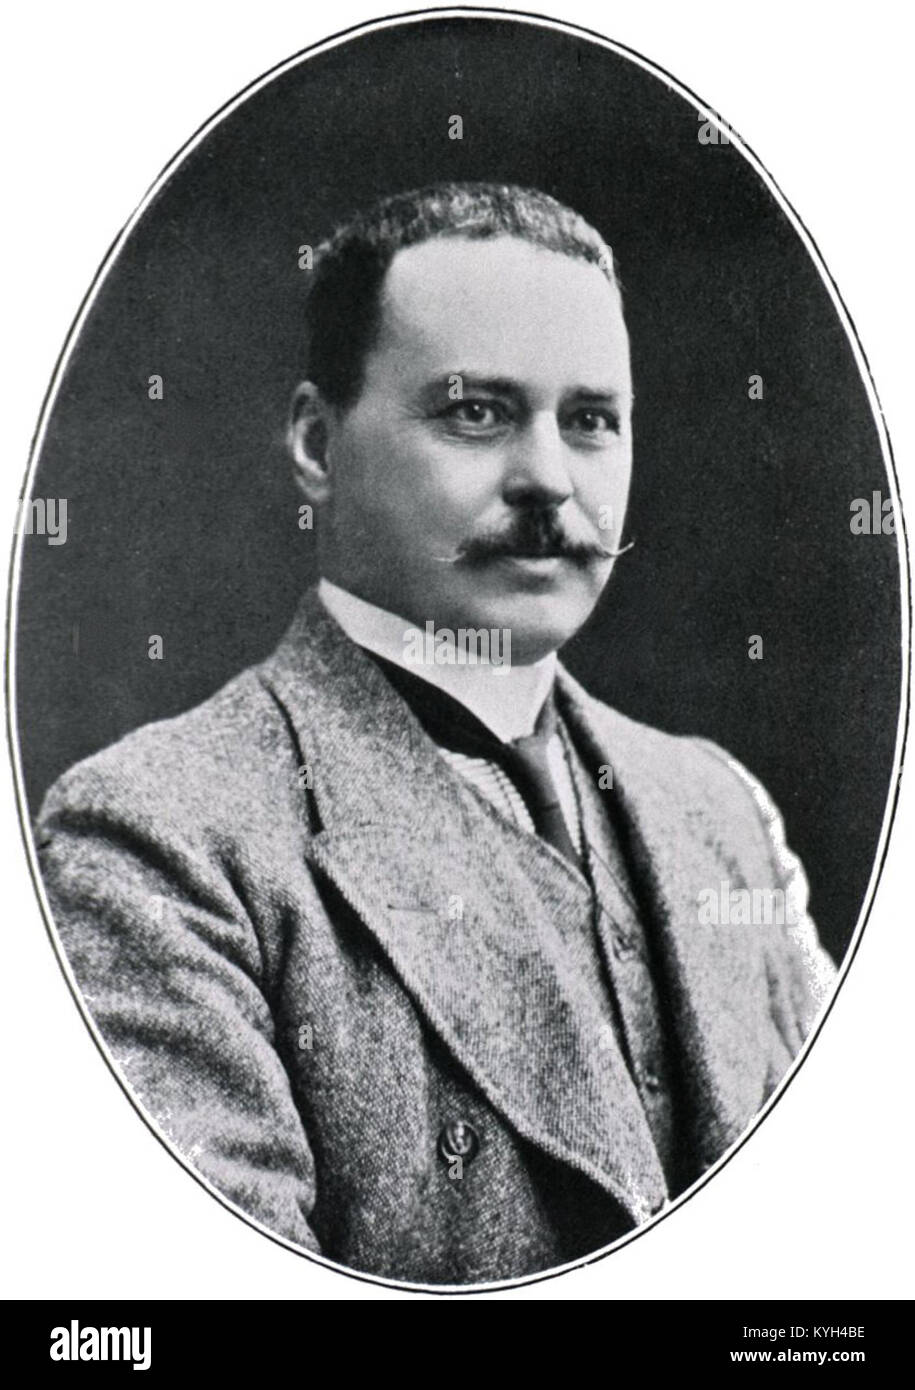 Sir Ronald Ross, British medical doctor who received the Nobel Prize for Physiology or Medicine in 1902 - Stock Image